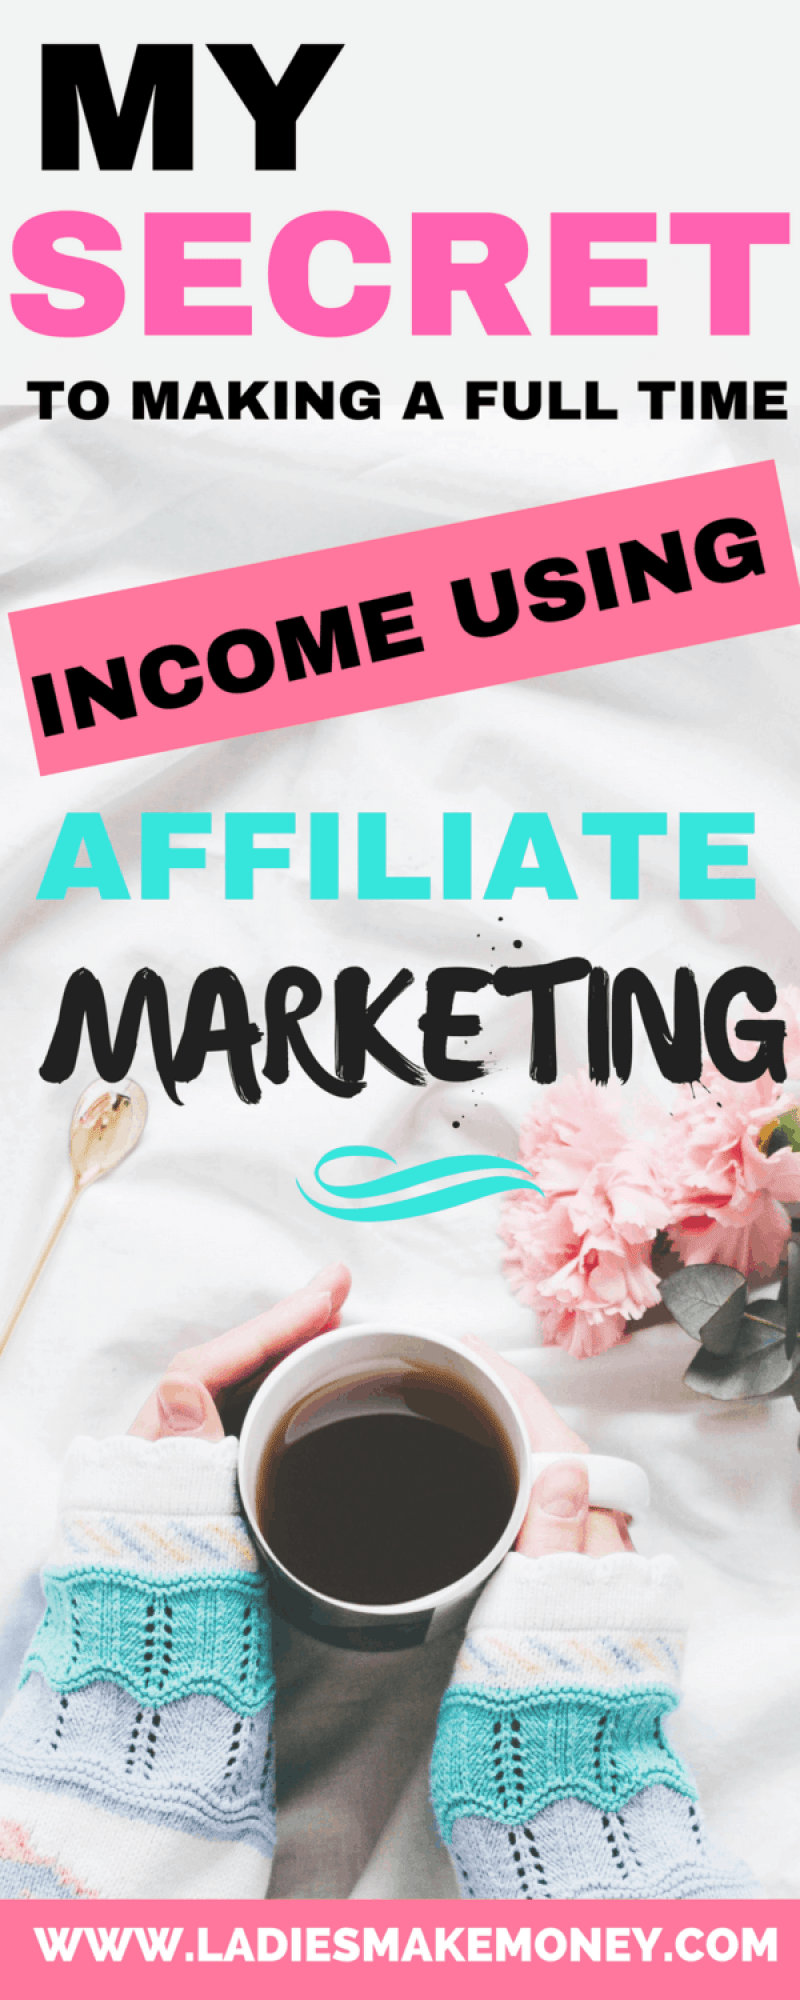 Making a full time income blogging using Affiliate marketing